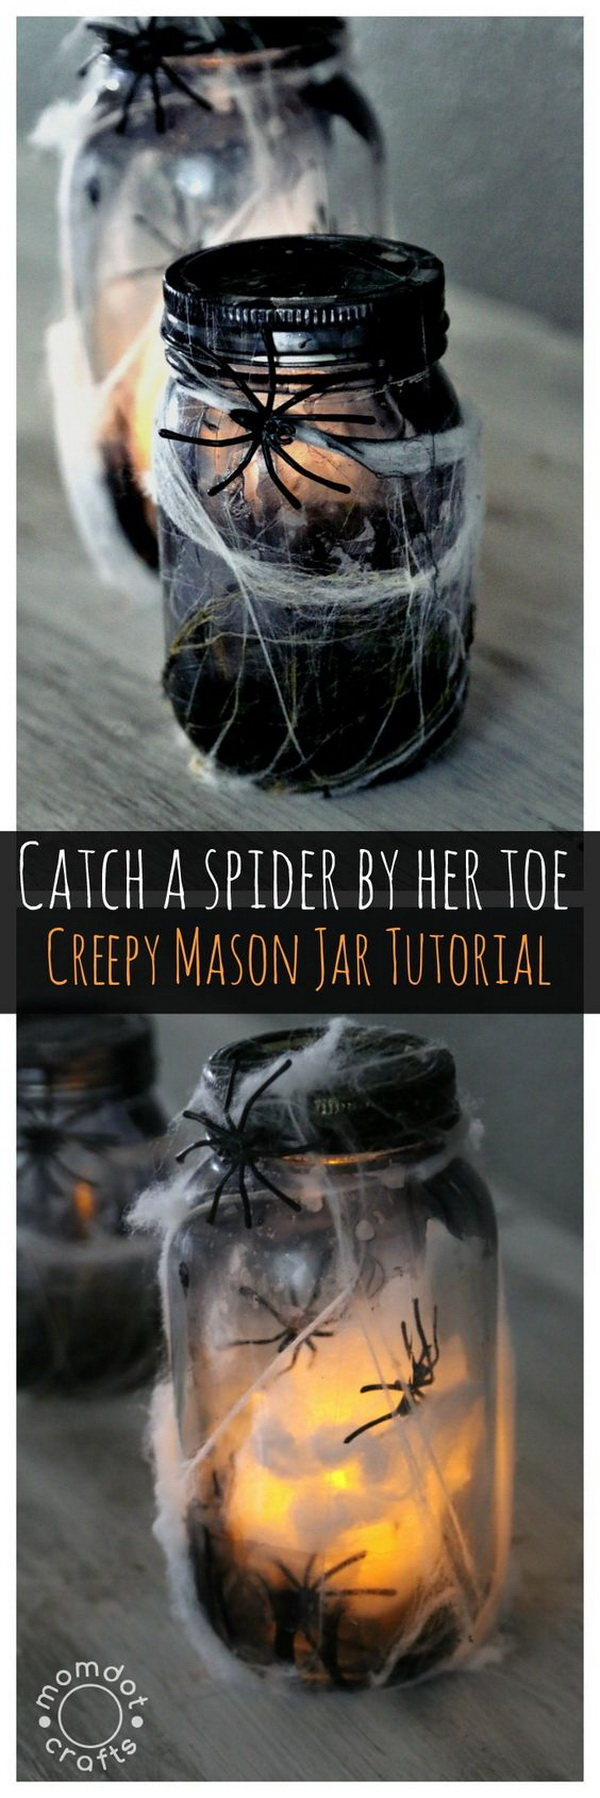 Light Up Spider Mason Jar. Make a creepy light up spider jar for halloween decor, center pieces or scary bathroom night light.